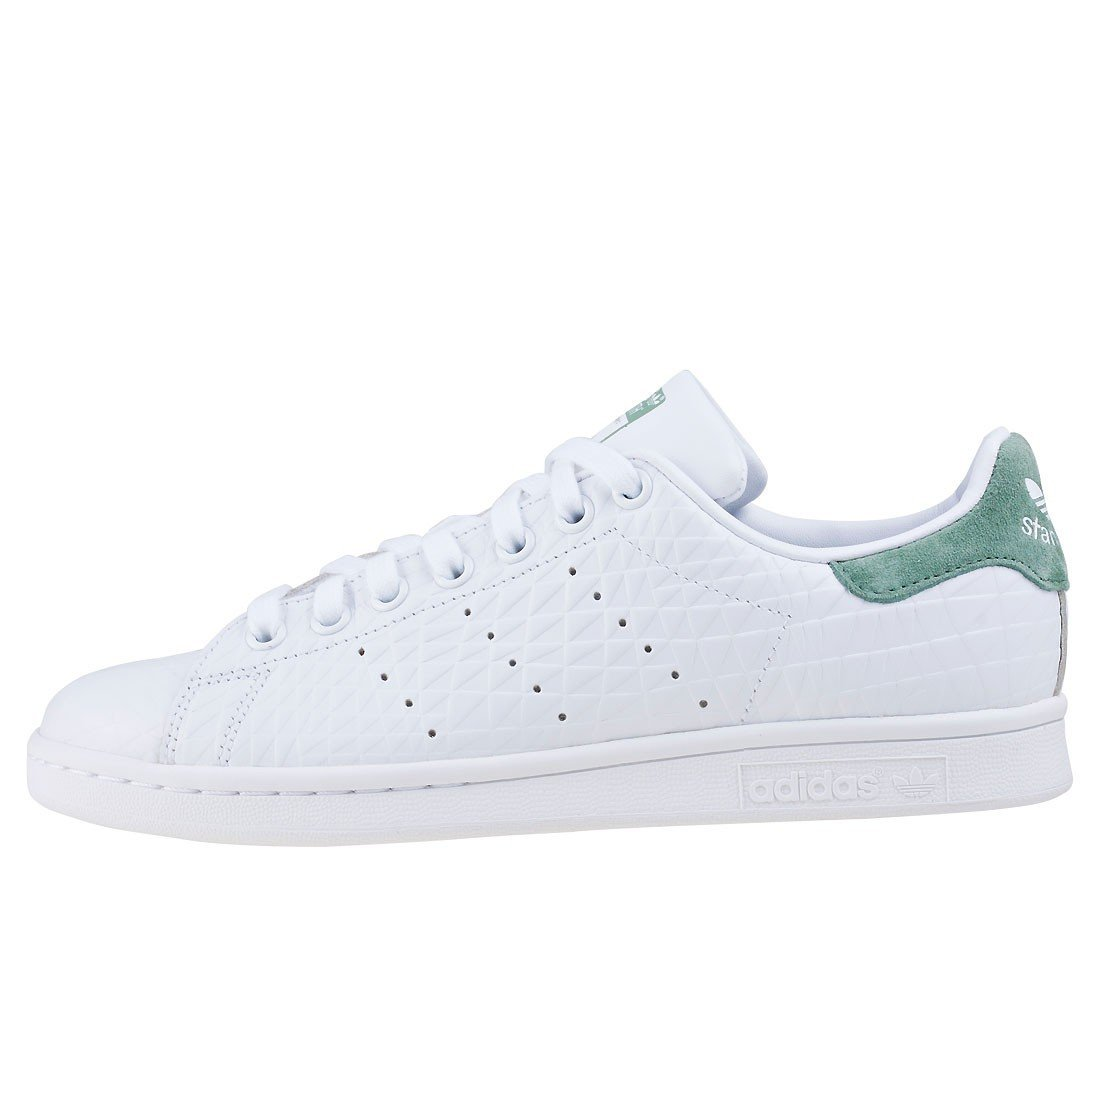 adidas Originals Women's Stan Smith W Fashion Sneaker B01MU0P0BB 10.5 B(M) US|White/White/Trace Green